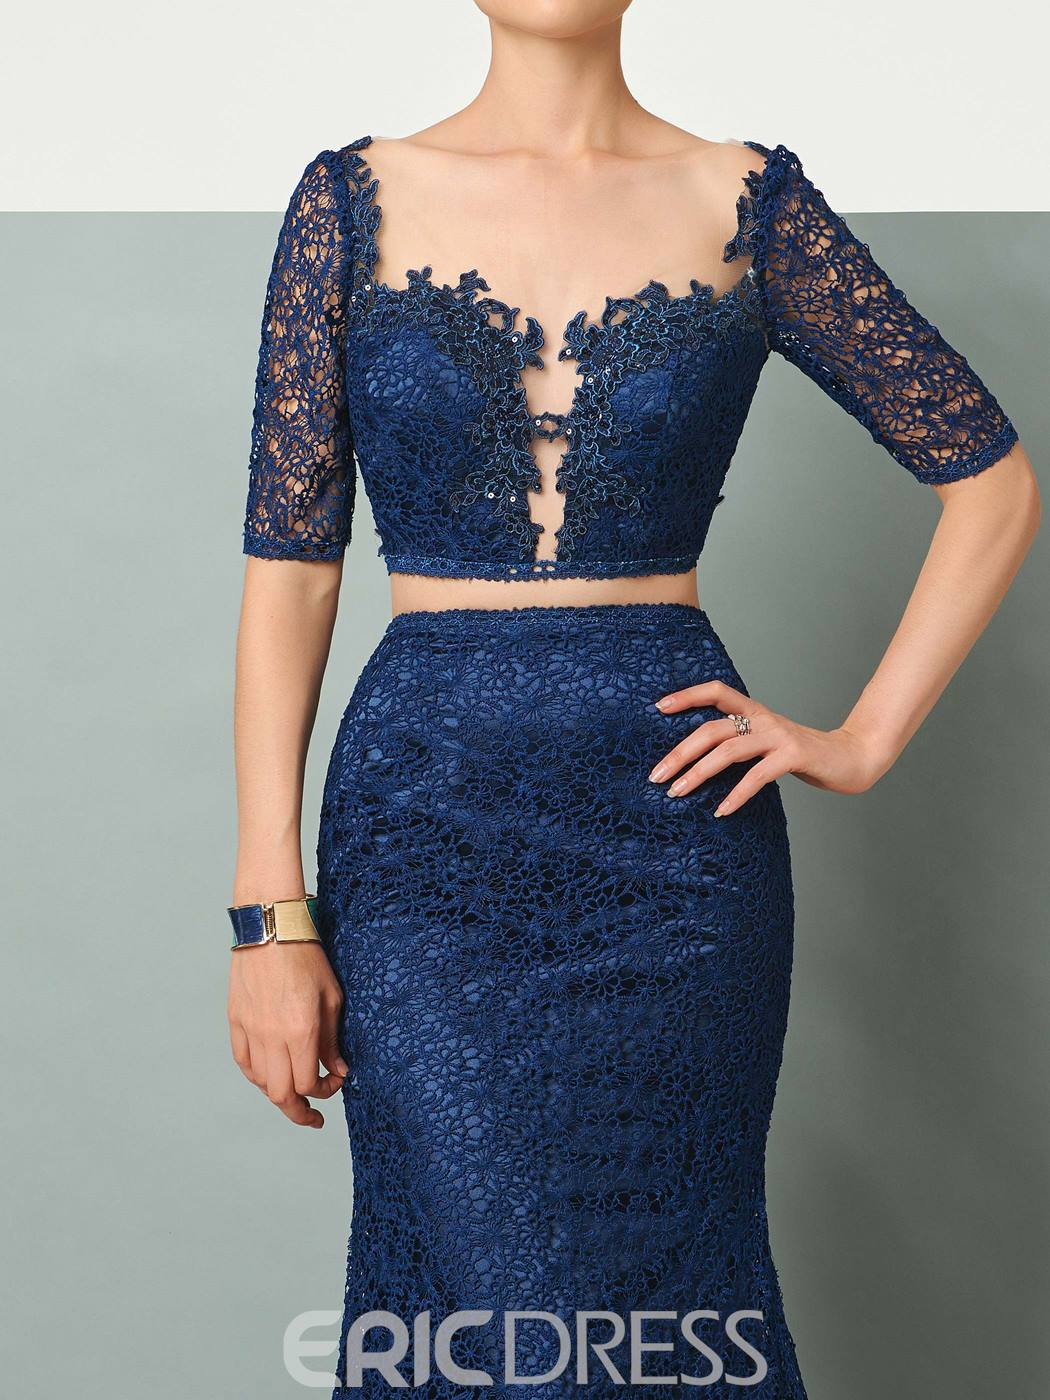 Ericdress Two Pieces Half Sleeve Backless Lace Mermaid Evening Party Dress